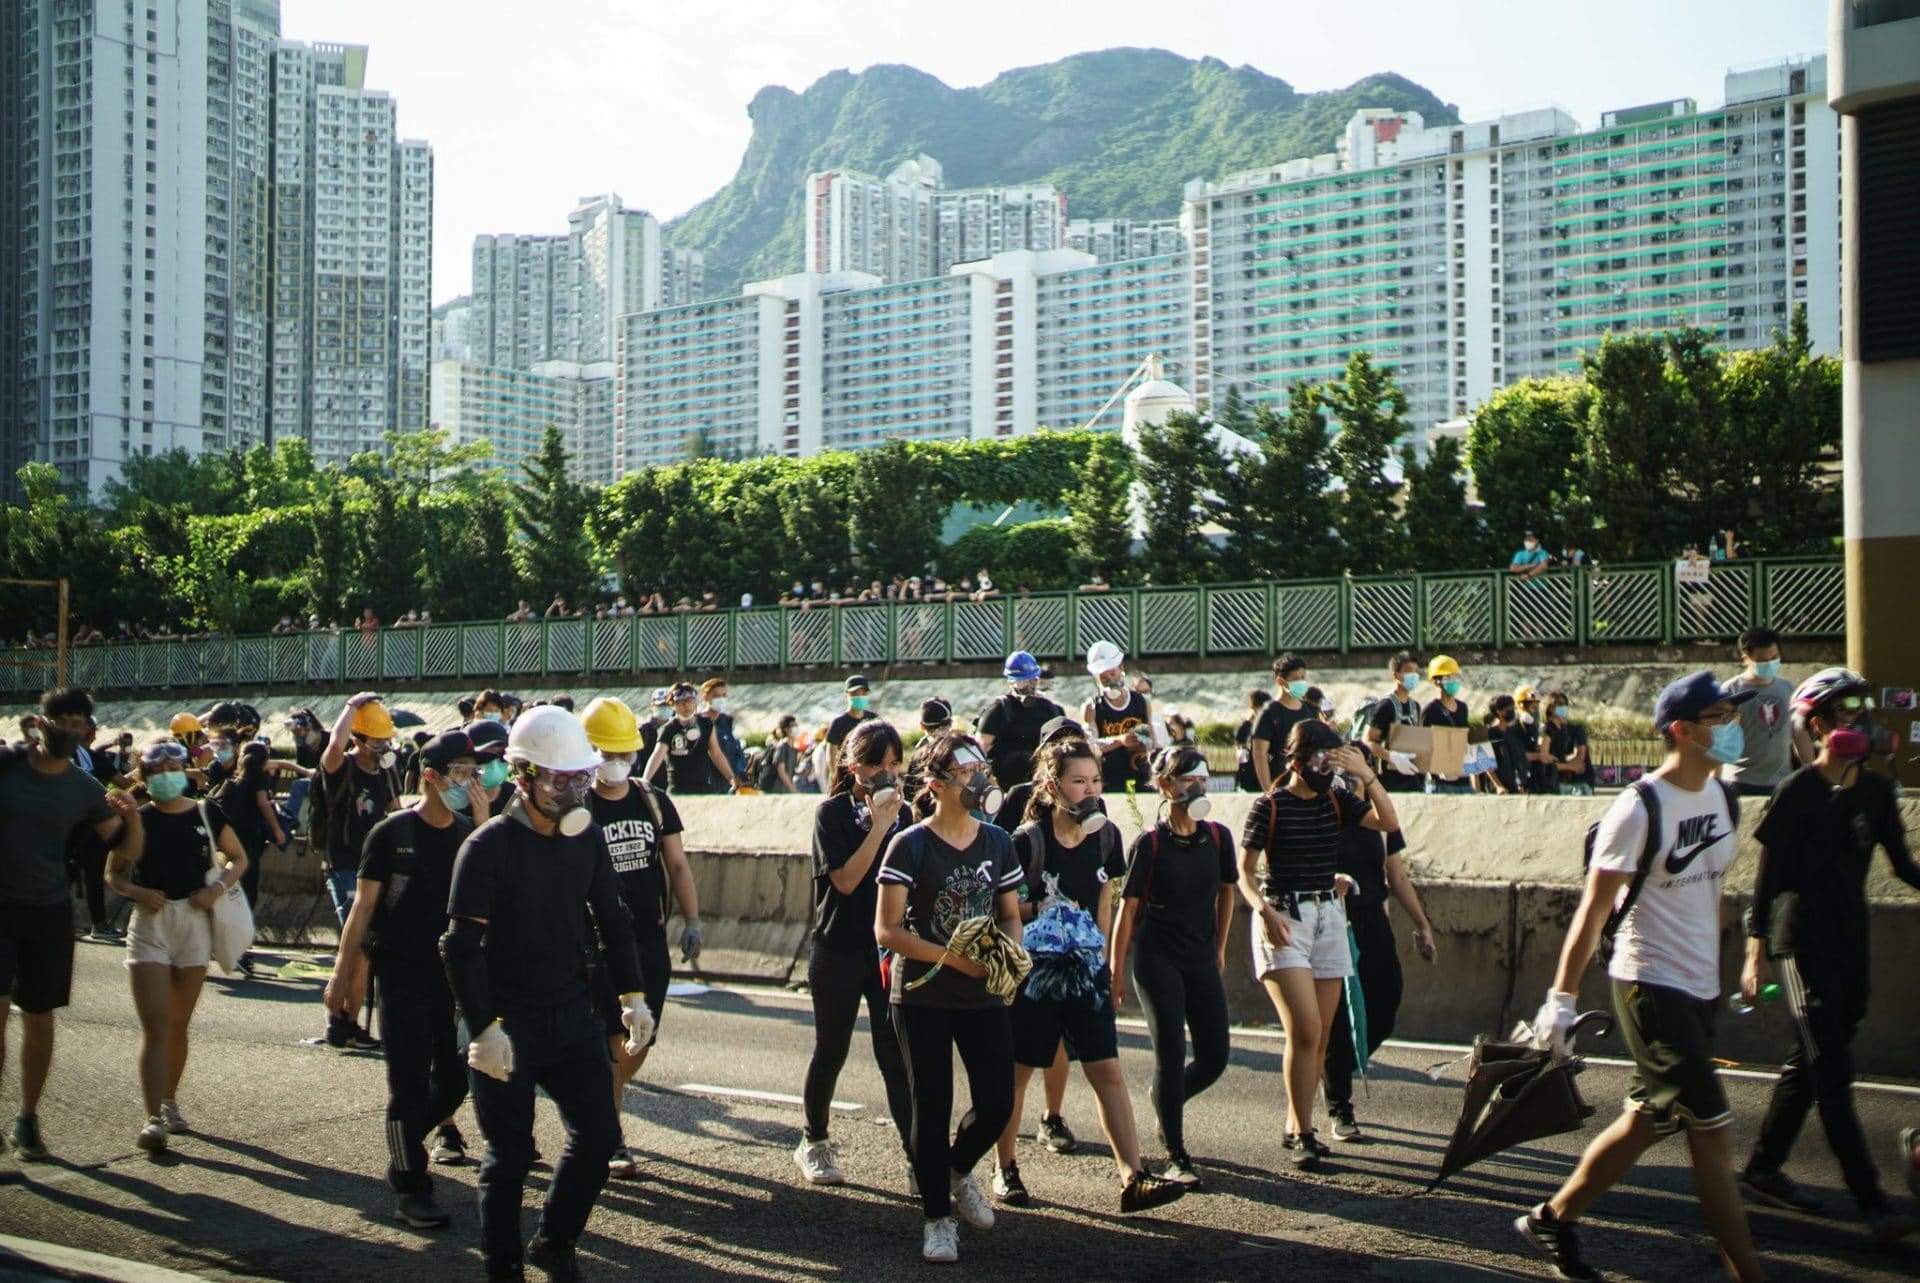 Il decimo weekend di proteste a Hong Kong, in dieci foto